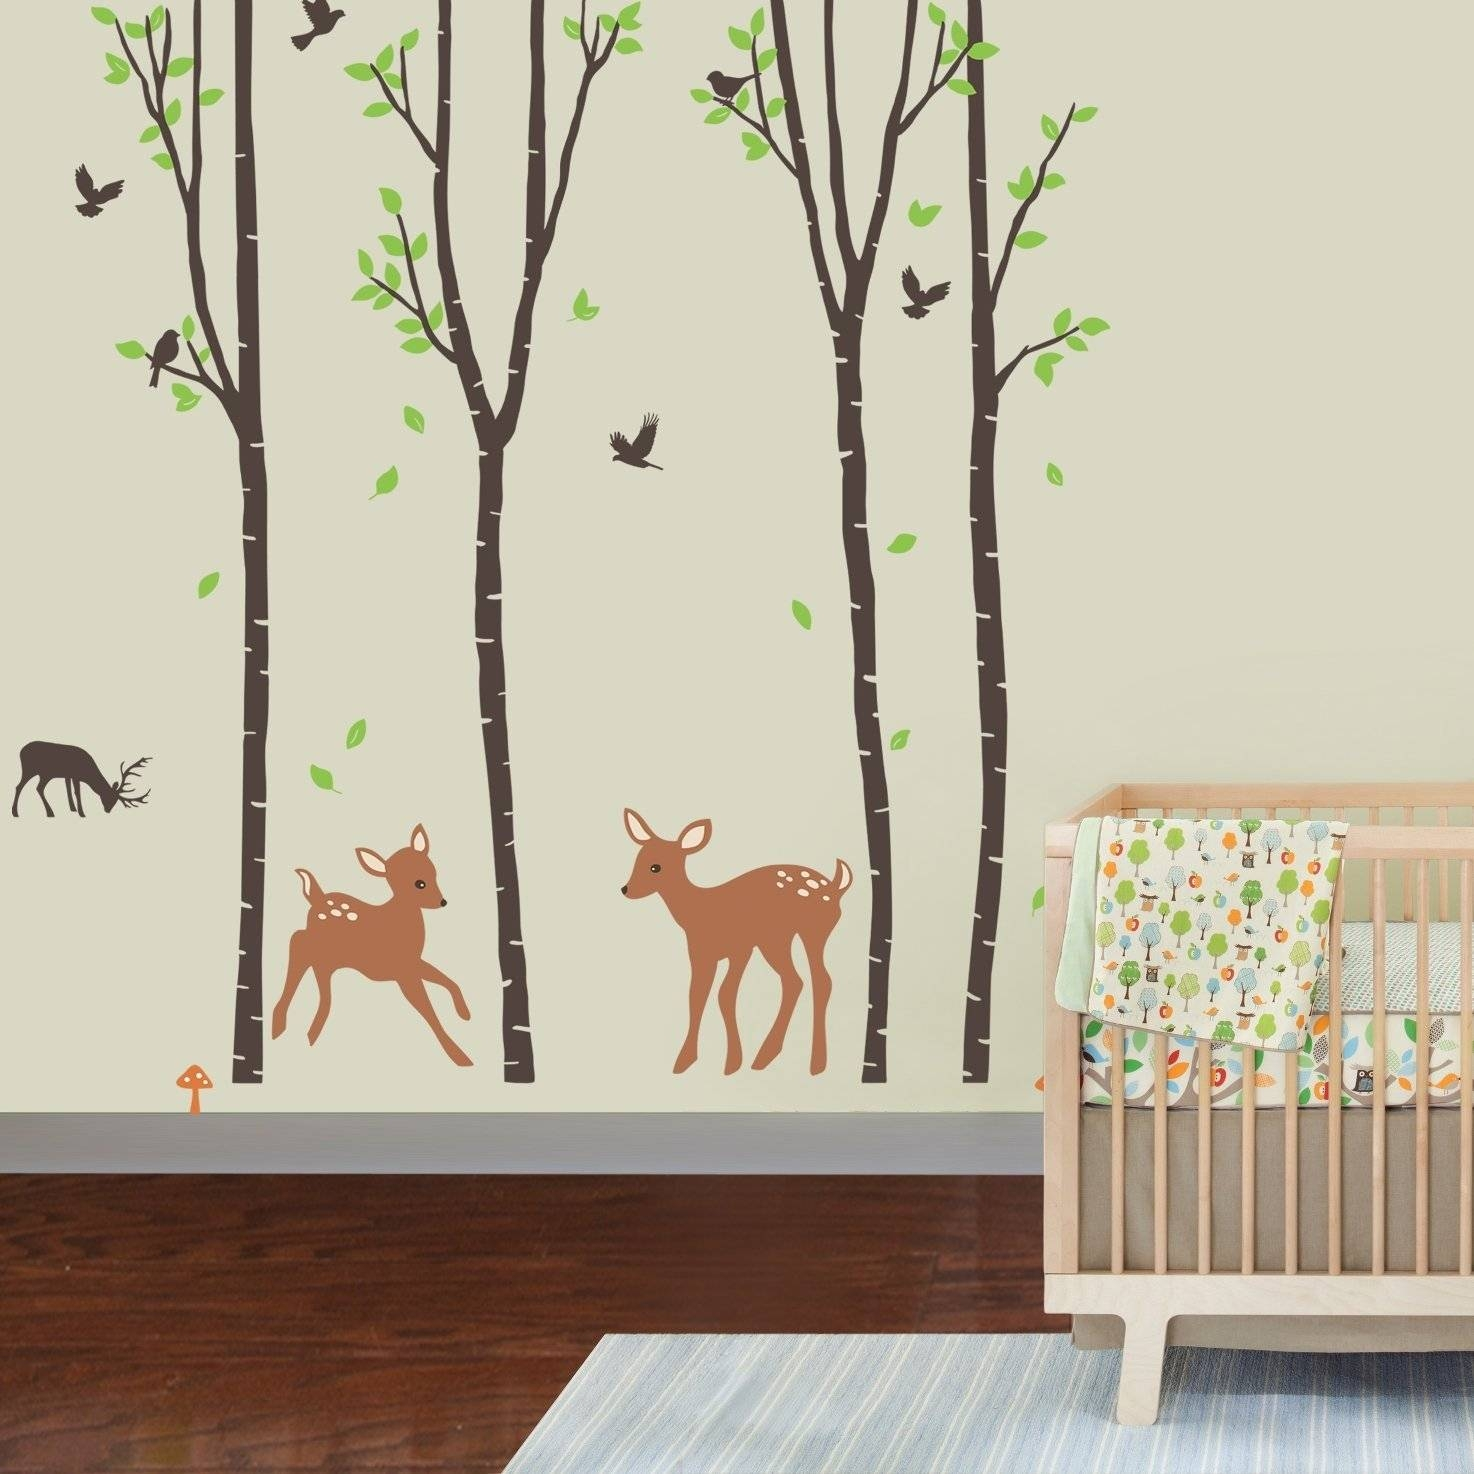 Bedroom : Dazzling Baby Room Wall Decor Diy Awesome Baby Nursery Inside Most Popular Baby Wall Art (View 18 of 30)